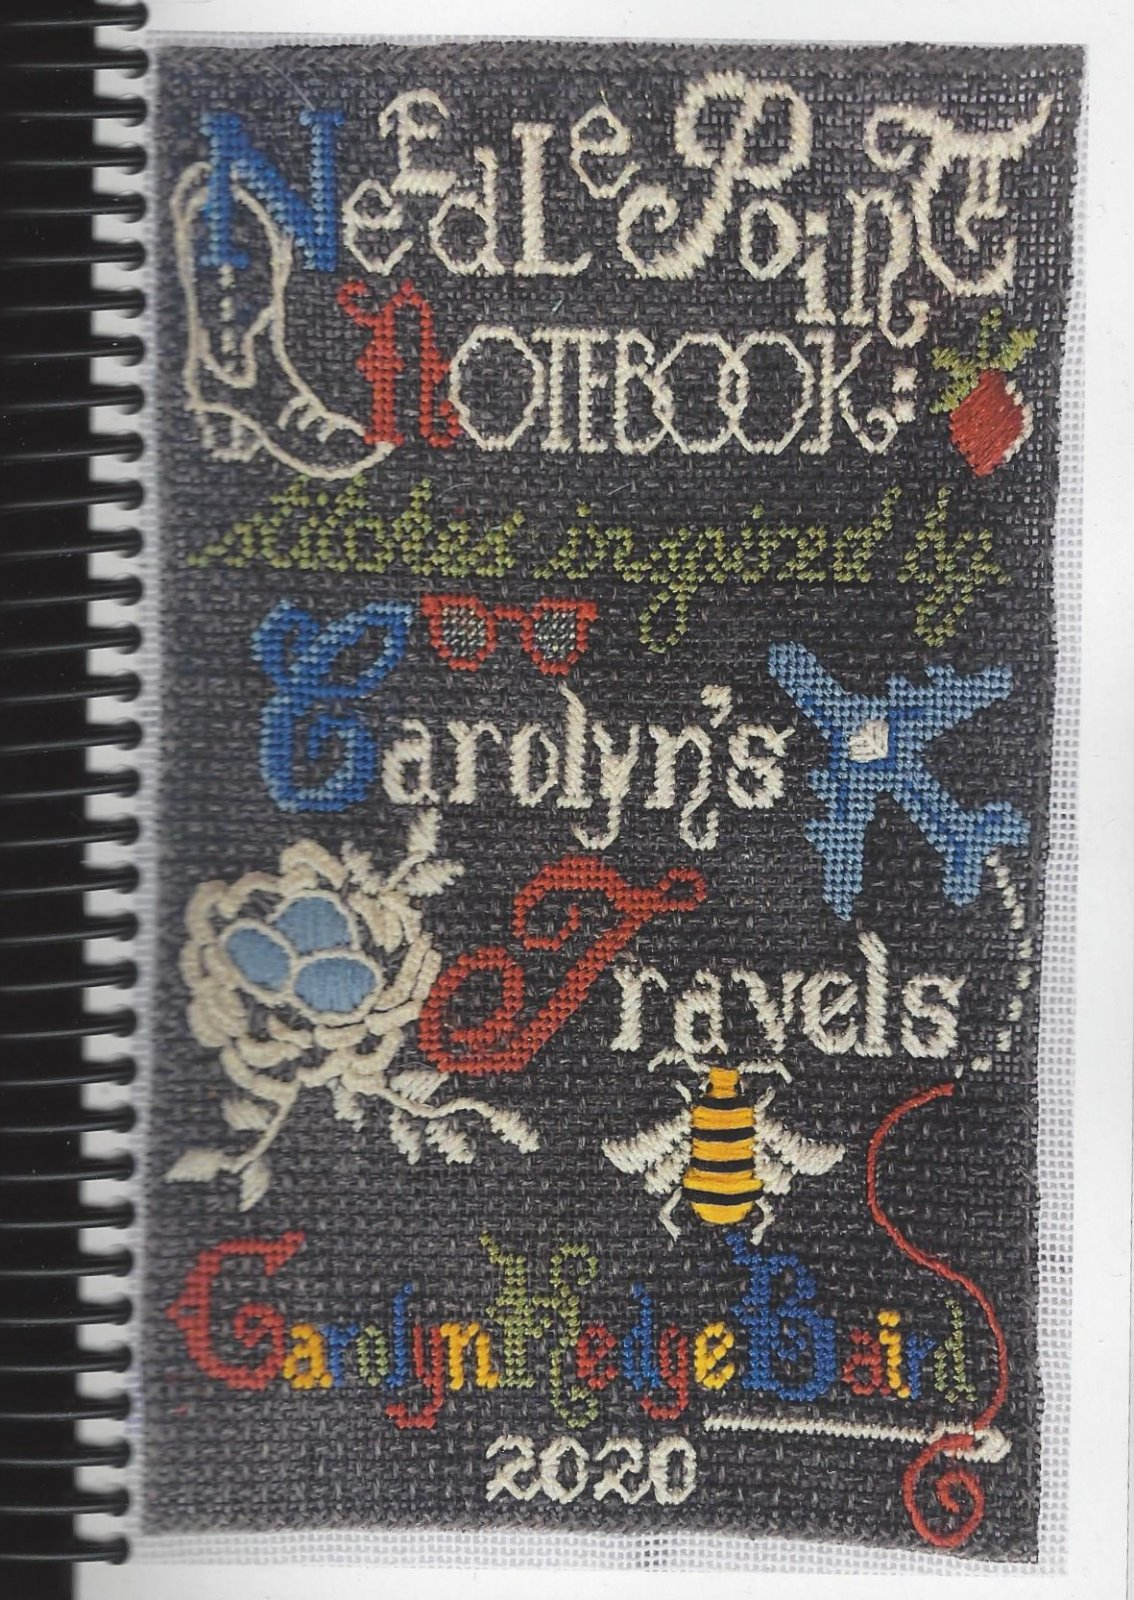 Needlepoint Notebook: Stitches Inspired by Carolyn's Travels